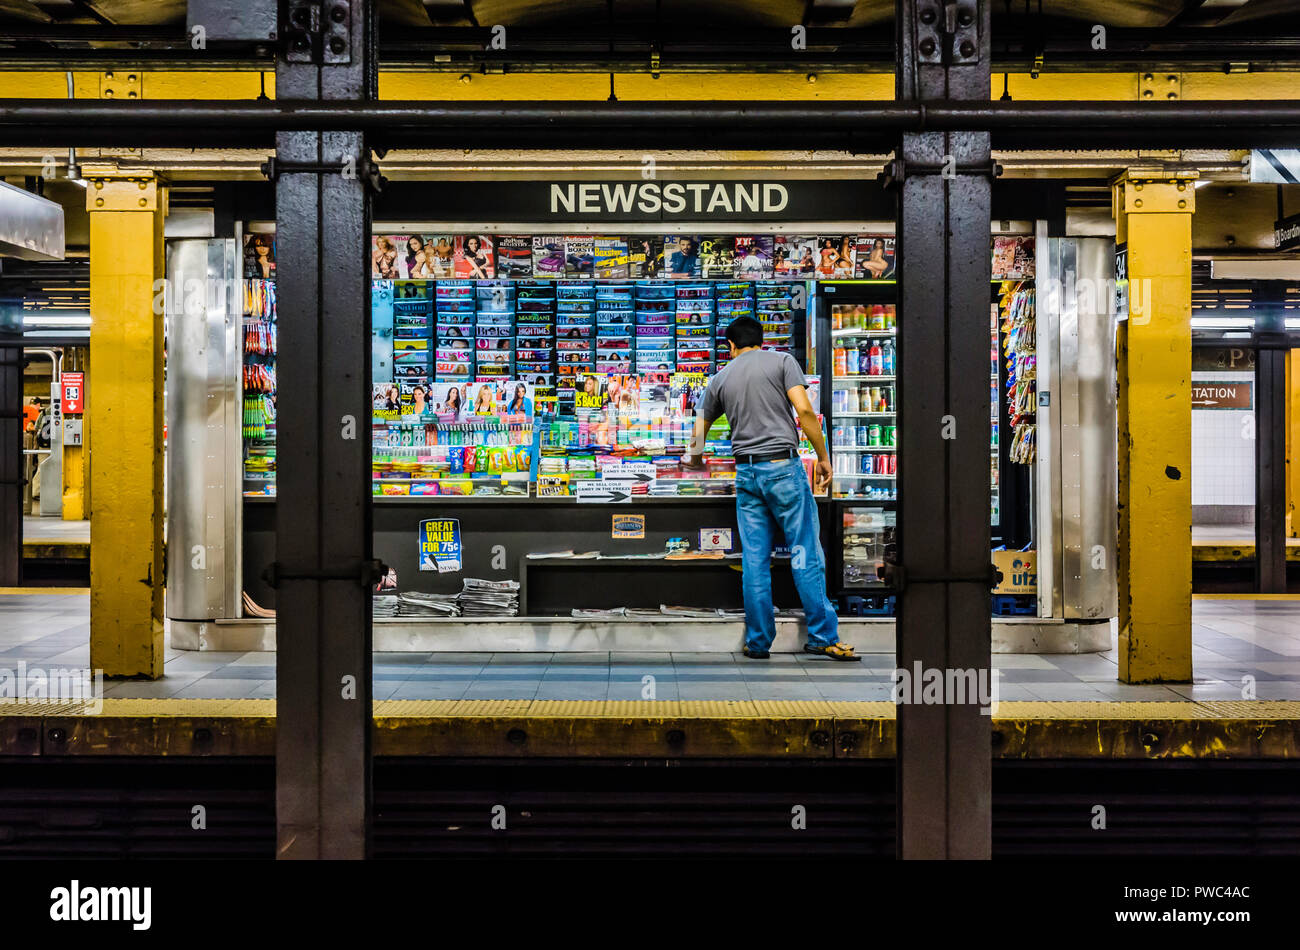 Newsstand 34th street penn station subway station manhattan new york new york